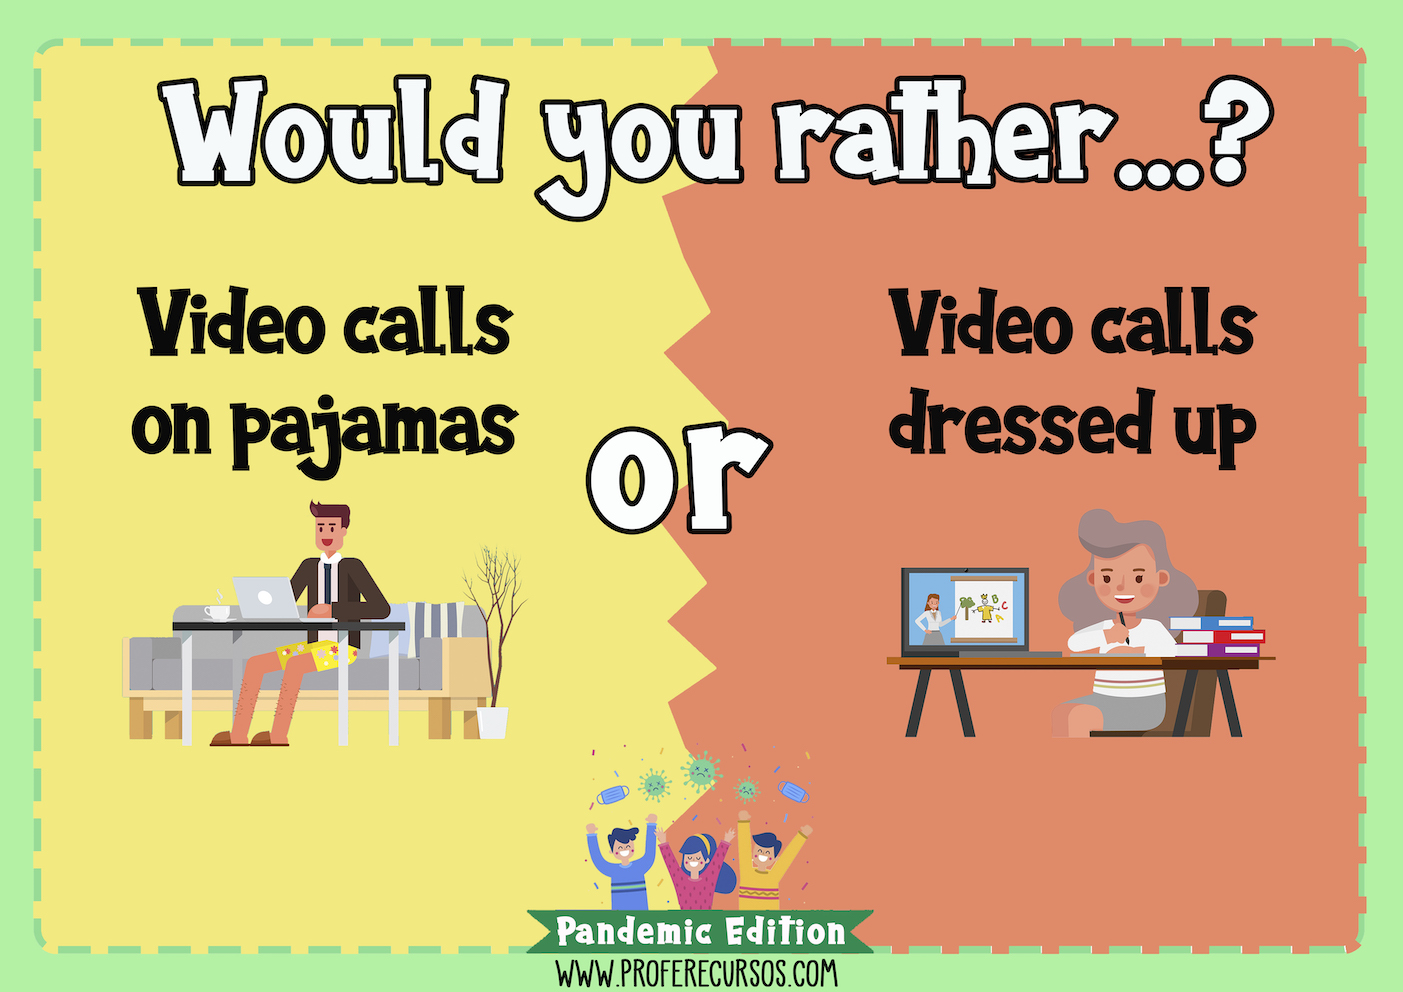 Would you rather online game